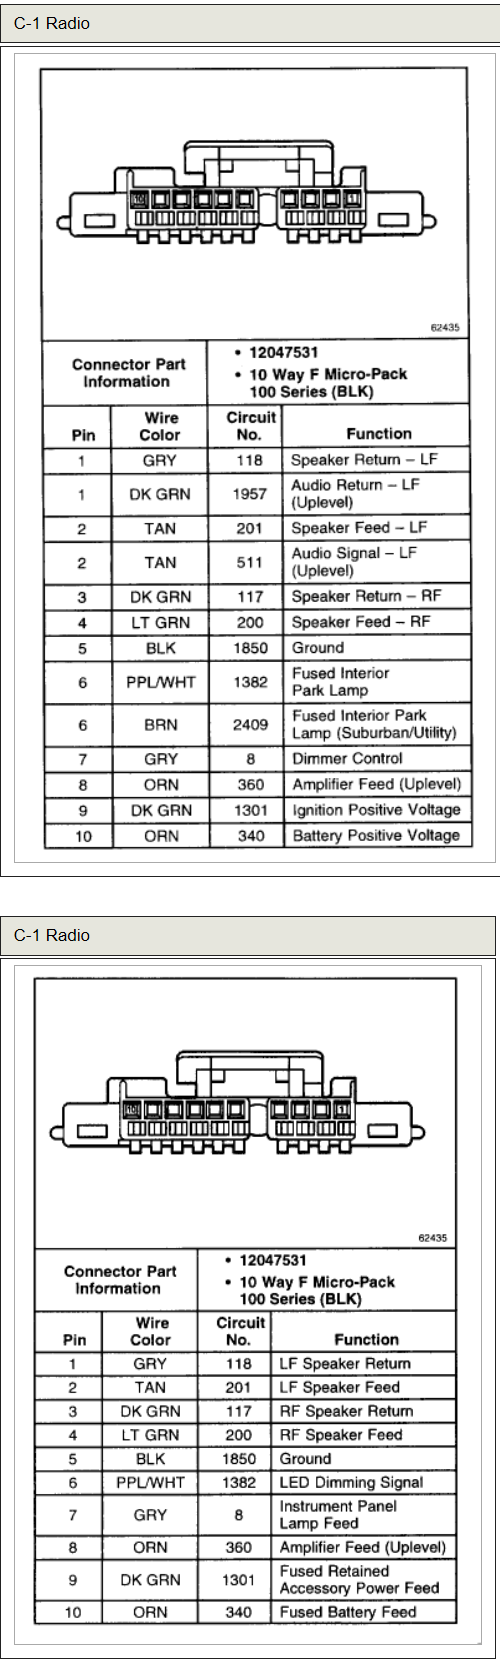 Chevrolet Car Radio Stereo Audio Wiring Diagram Autoradio Connector Led Lights No Free Download Diagrams Pictures Wire Installation Schematic Schema Esquema De Conexiones Anschlusskammern Konektor